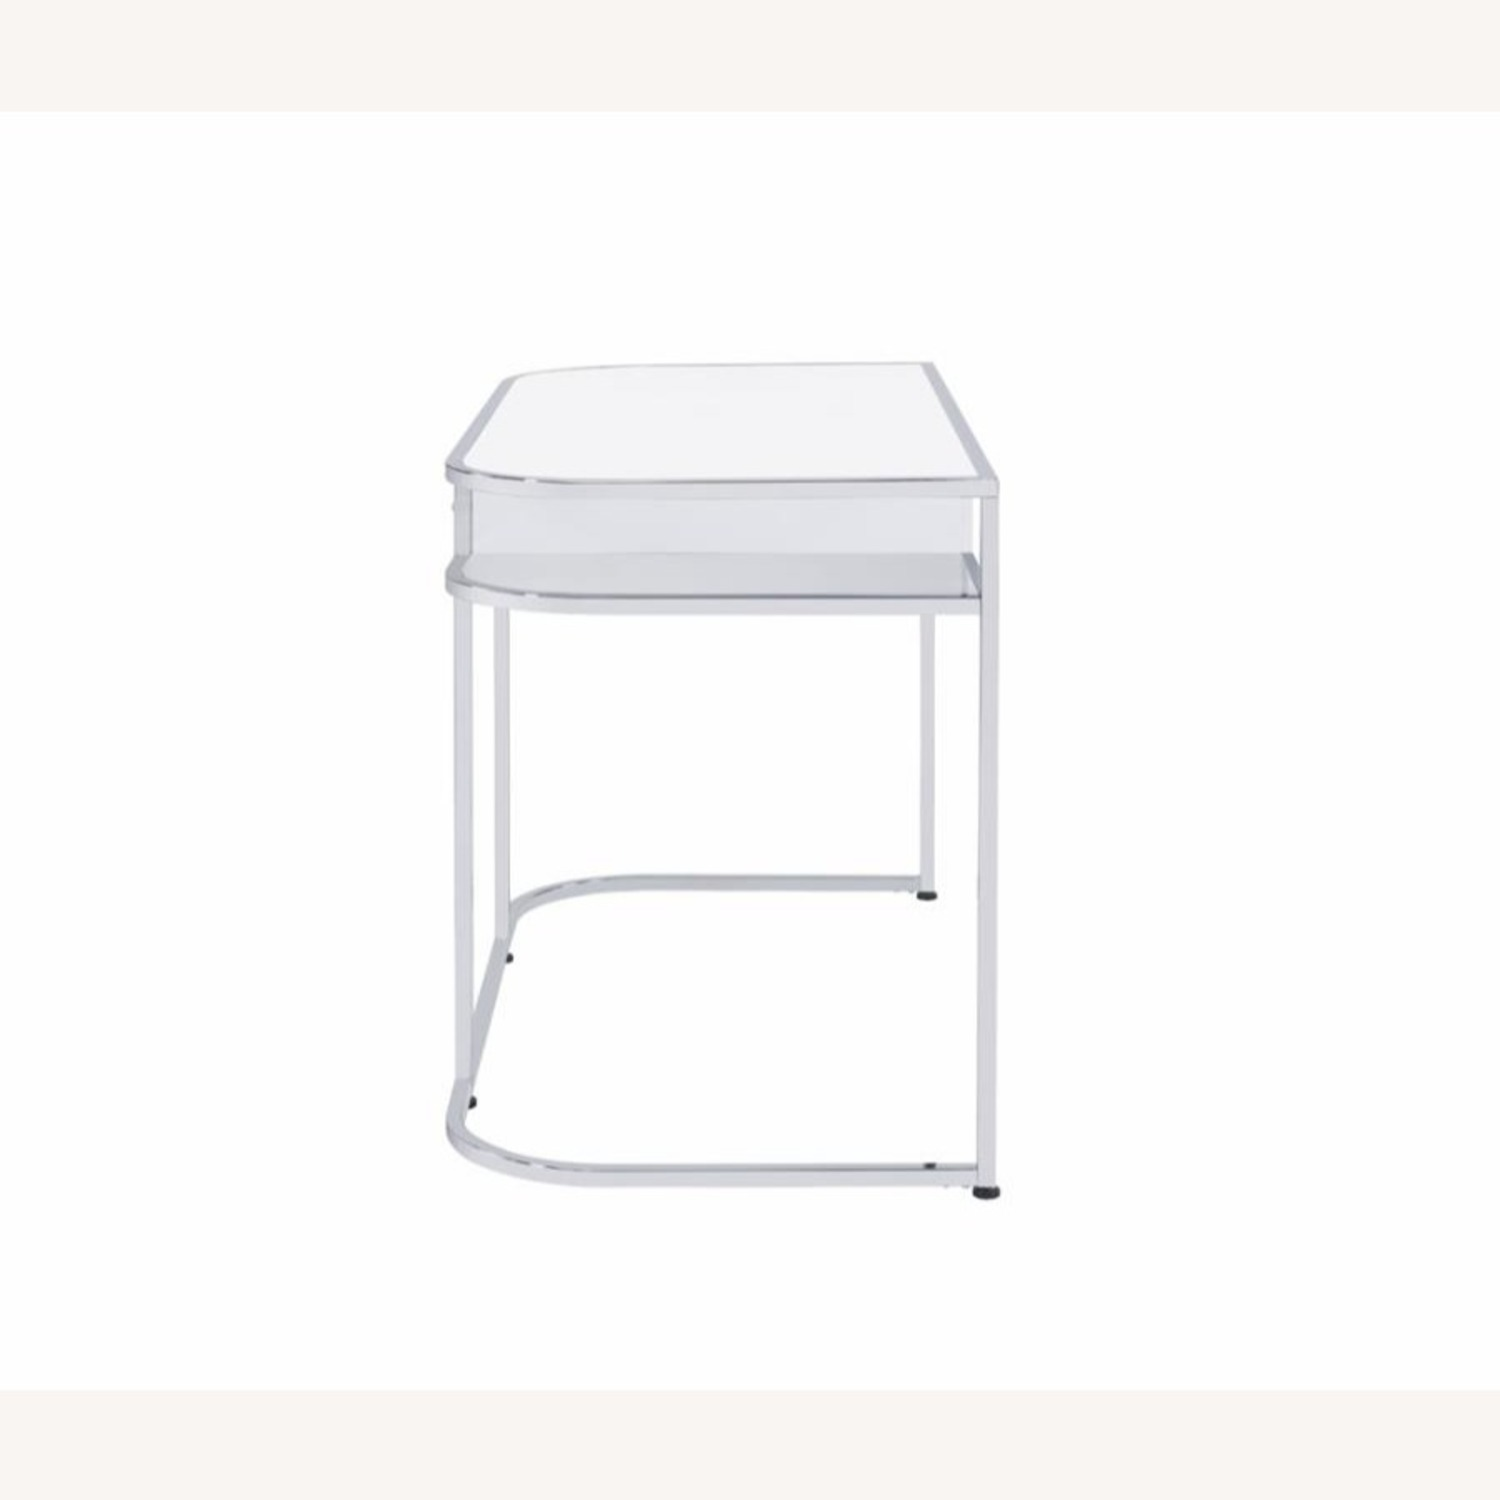 Writing Desk In White High Gloss Lacquer Finish - image-7